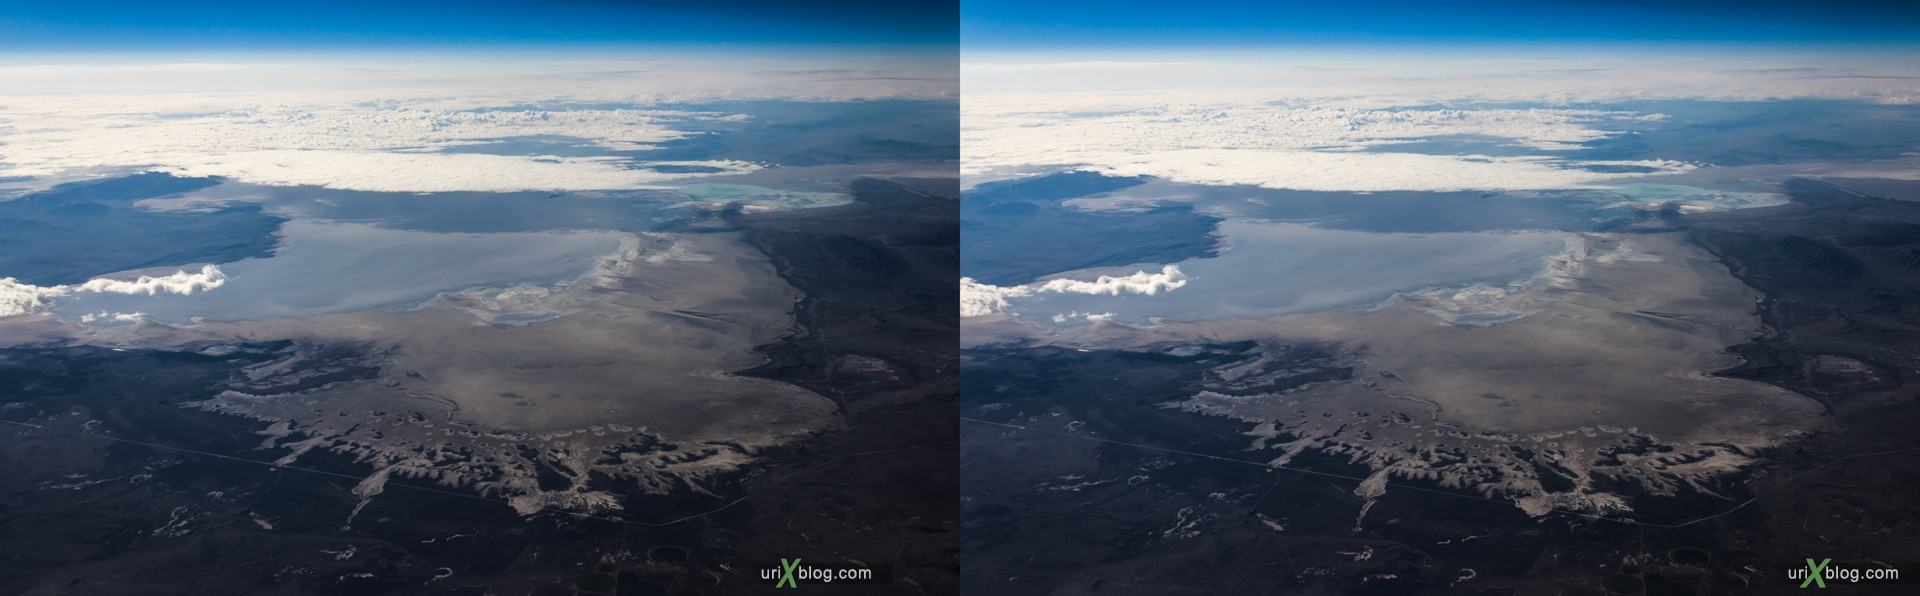 2013, Great Salt Lake, Utah, Rocky mountains, USA, panorama, airplane, black and white, bw, snow, ice, clouds, horizon, 3D, stereo pair, cross-eyed, crossview, cross view stereo pair, stereoscopic